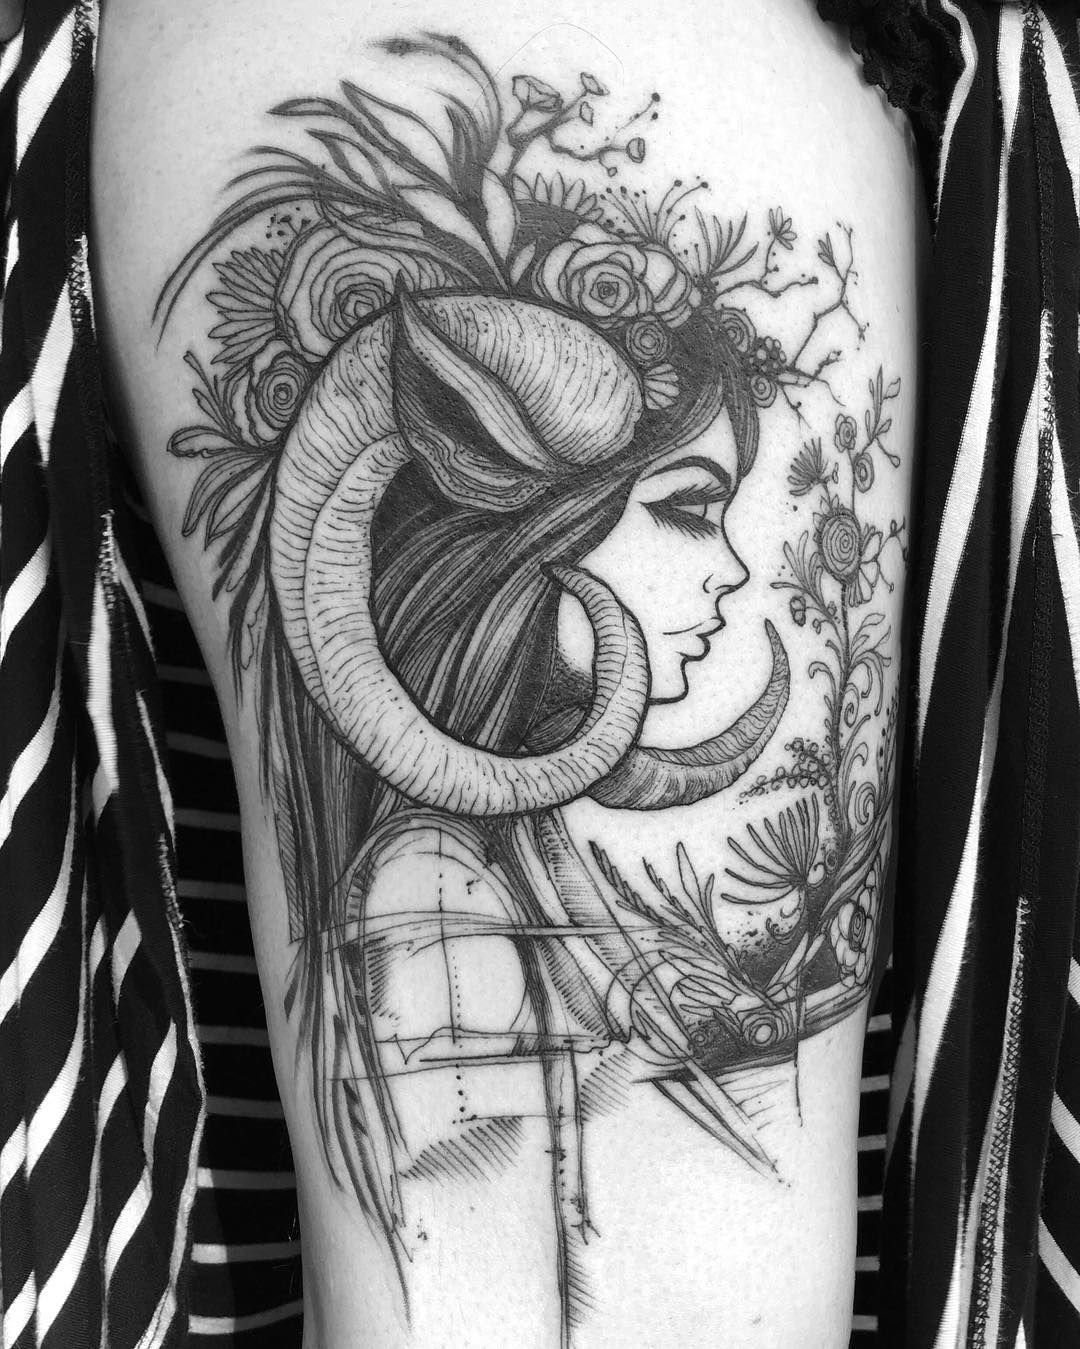 aries tattoo idea art by dinonemec Aries tattoo